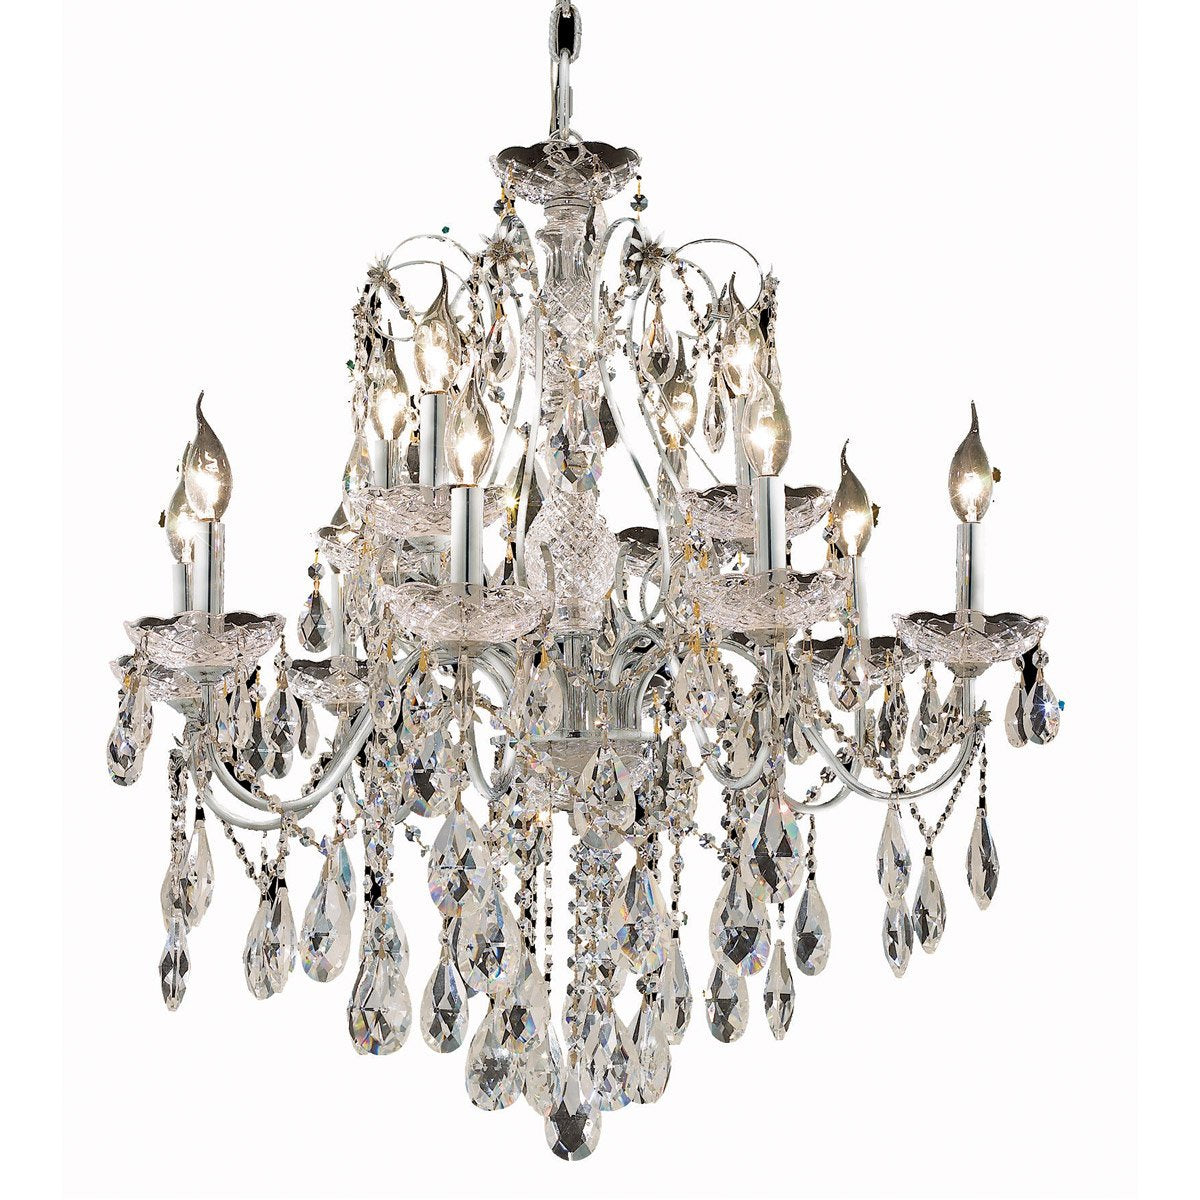 St. Francis 28 Crystal Chandelier With 12 Lights - Chrome Finish And Spectra Swarovski Crystal Chandelier